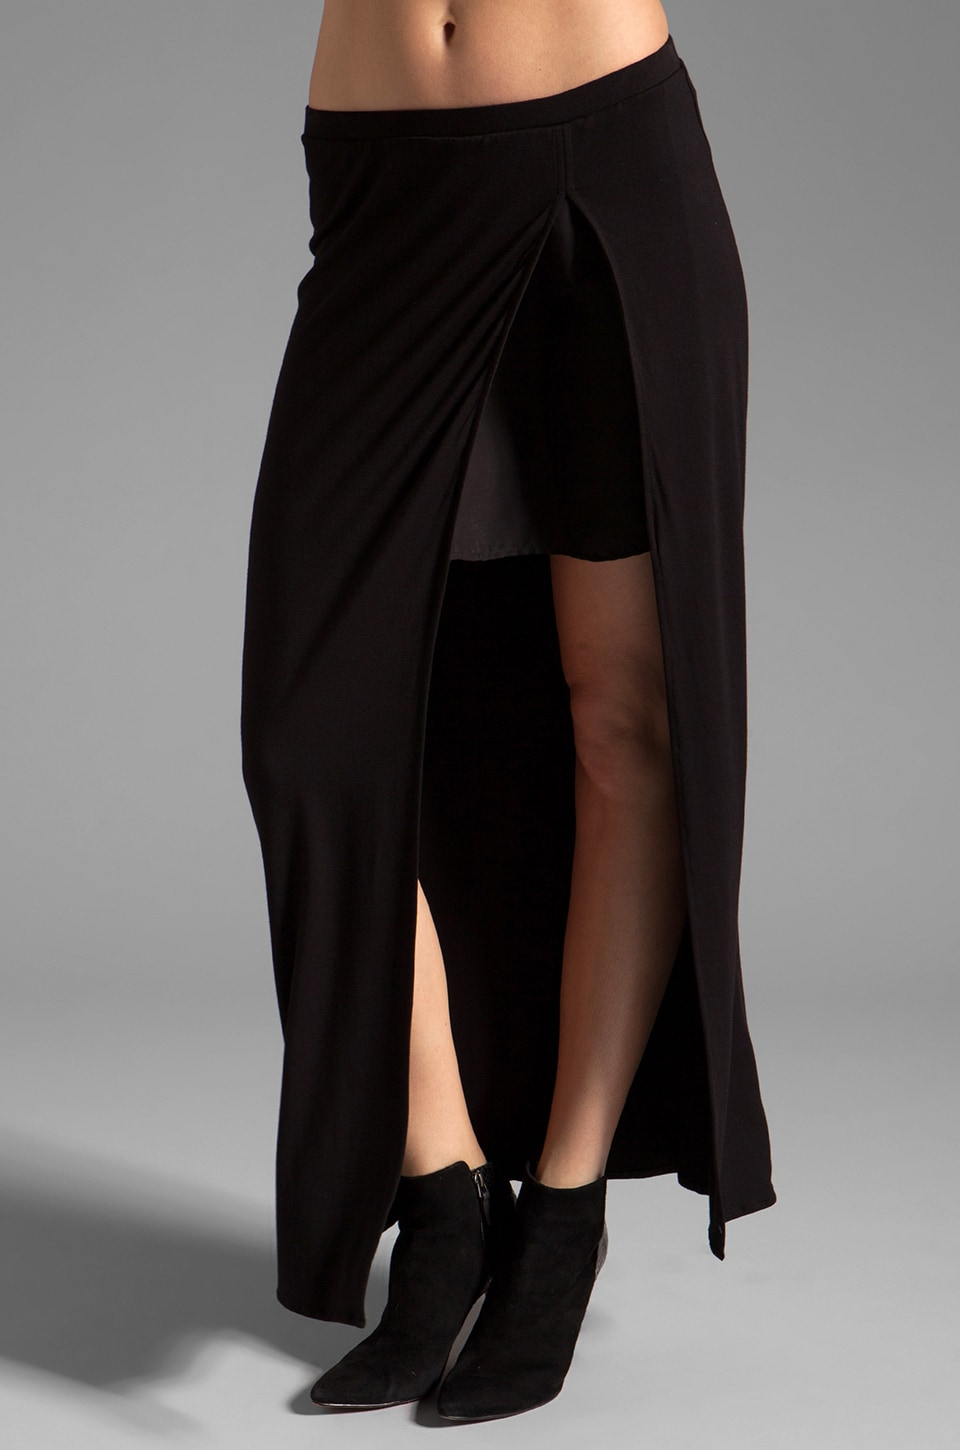 fLuXuS Ricca Skirt in Black